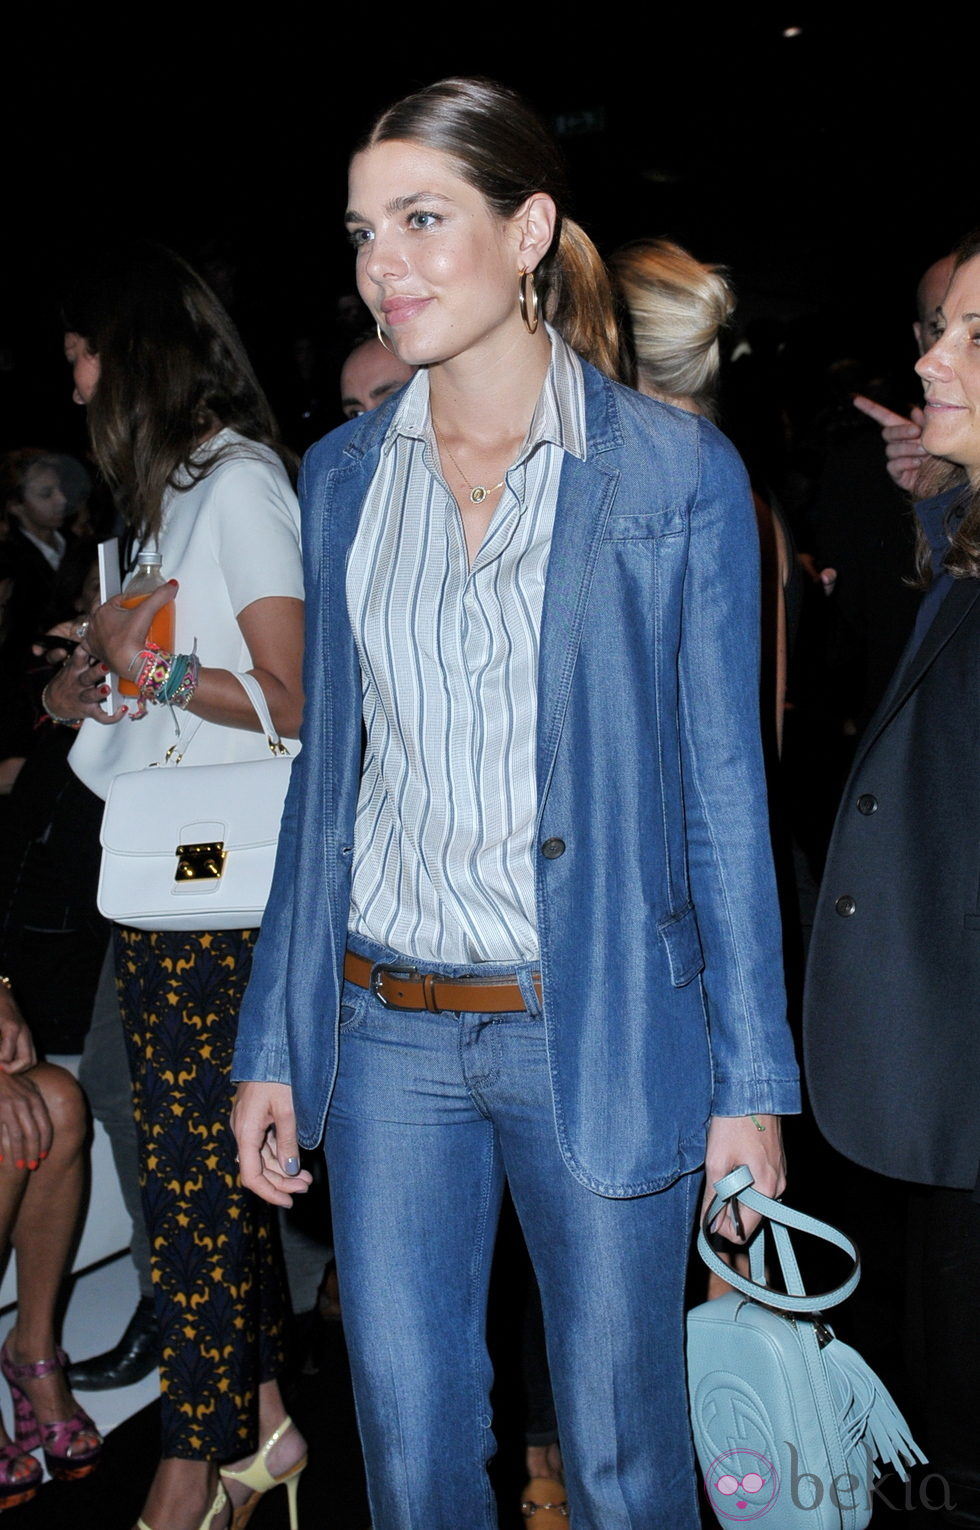 Carlota Casiraghi con un total look denim  El estilo de